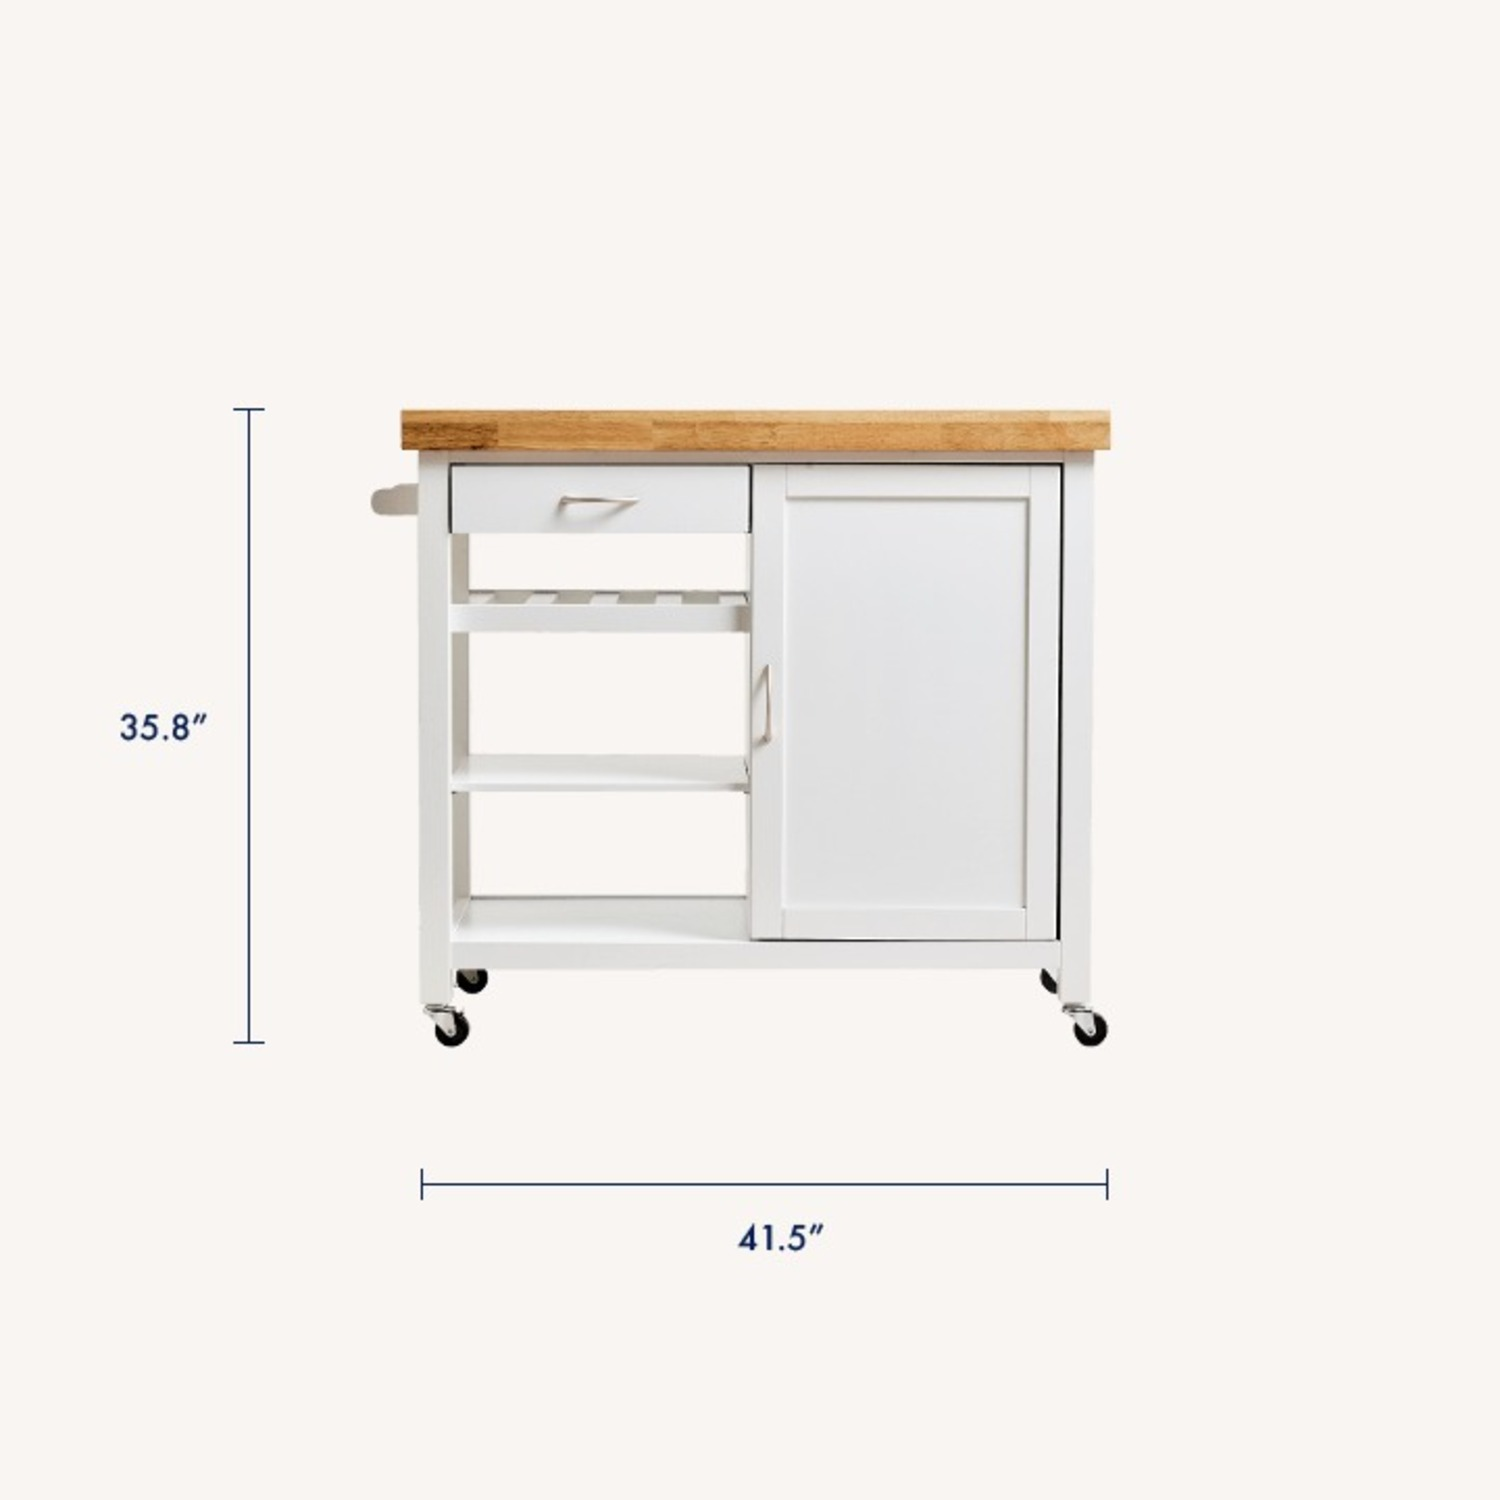 Feather Currawong Kitchen Cart - image-4